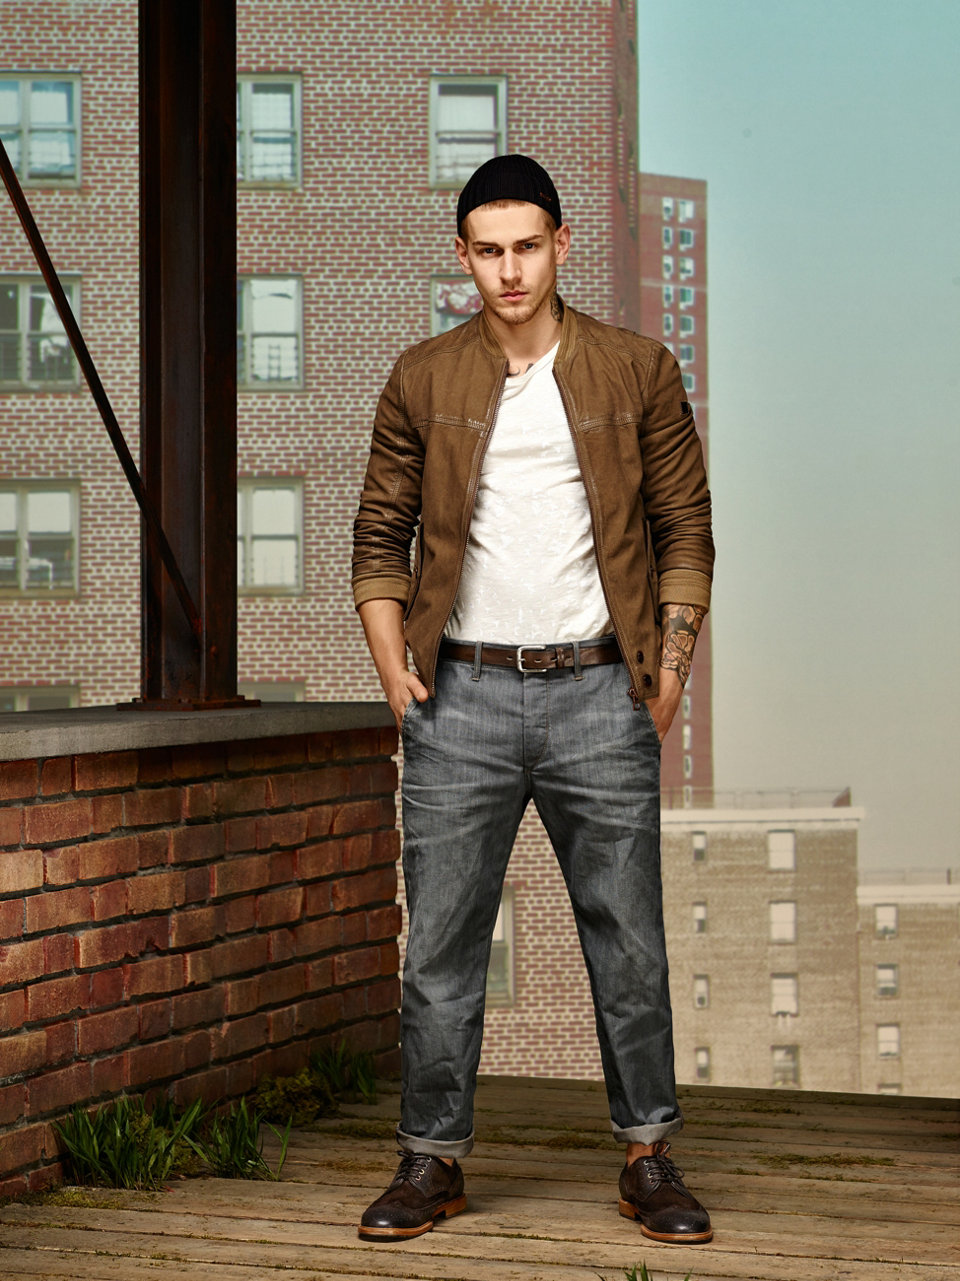 Leather jacket in khaki, white T-shirt, grey jeans, brown belt and dark brown shoes by BOSS Orange